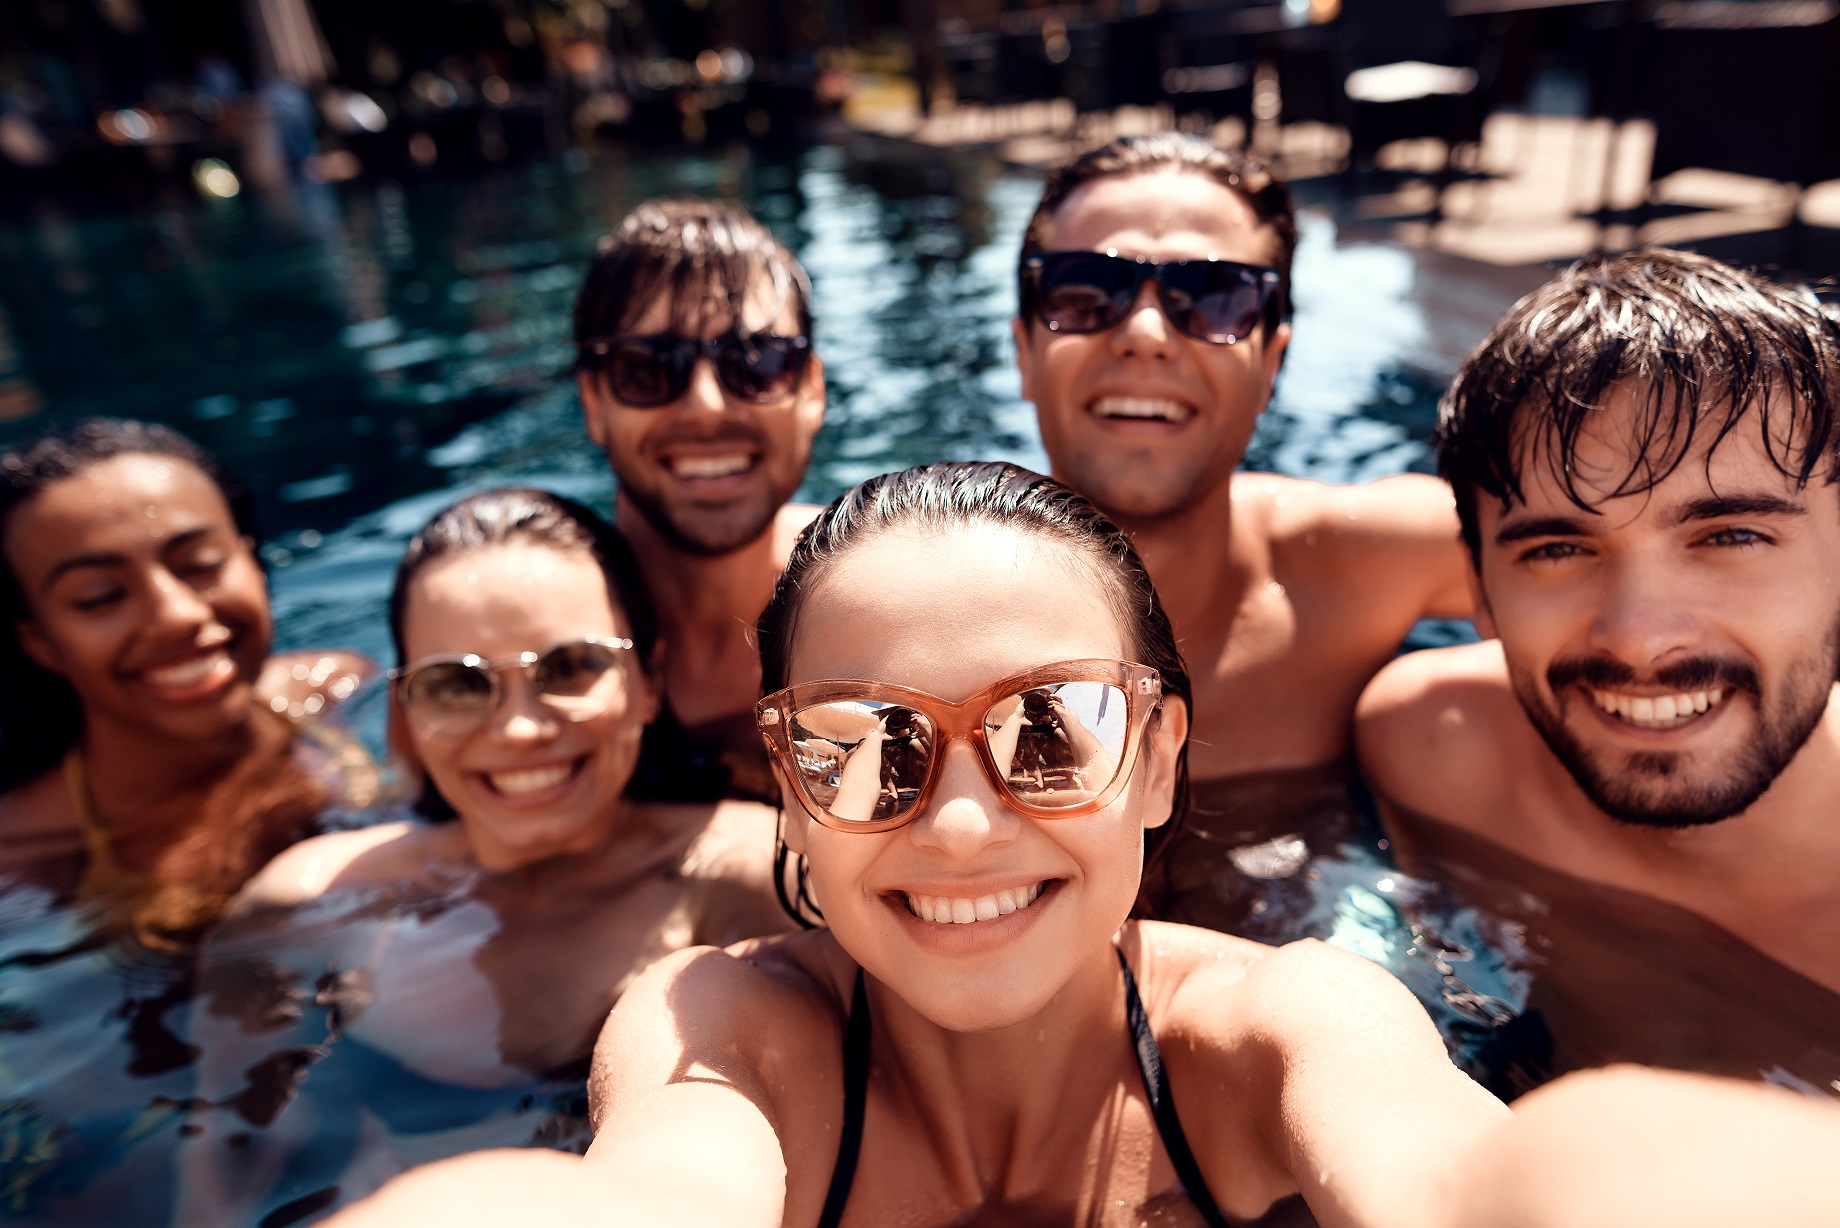 Summer vacation friends together at swimming pool party. Swimming pool party.